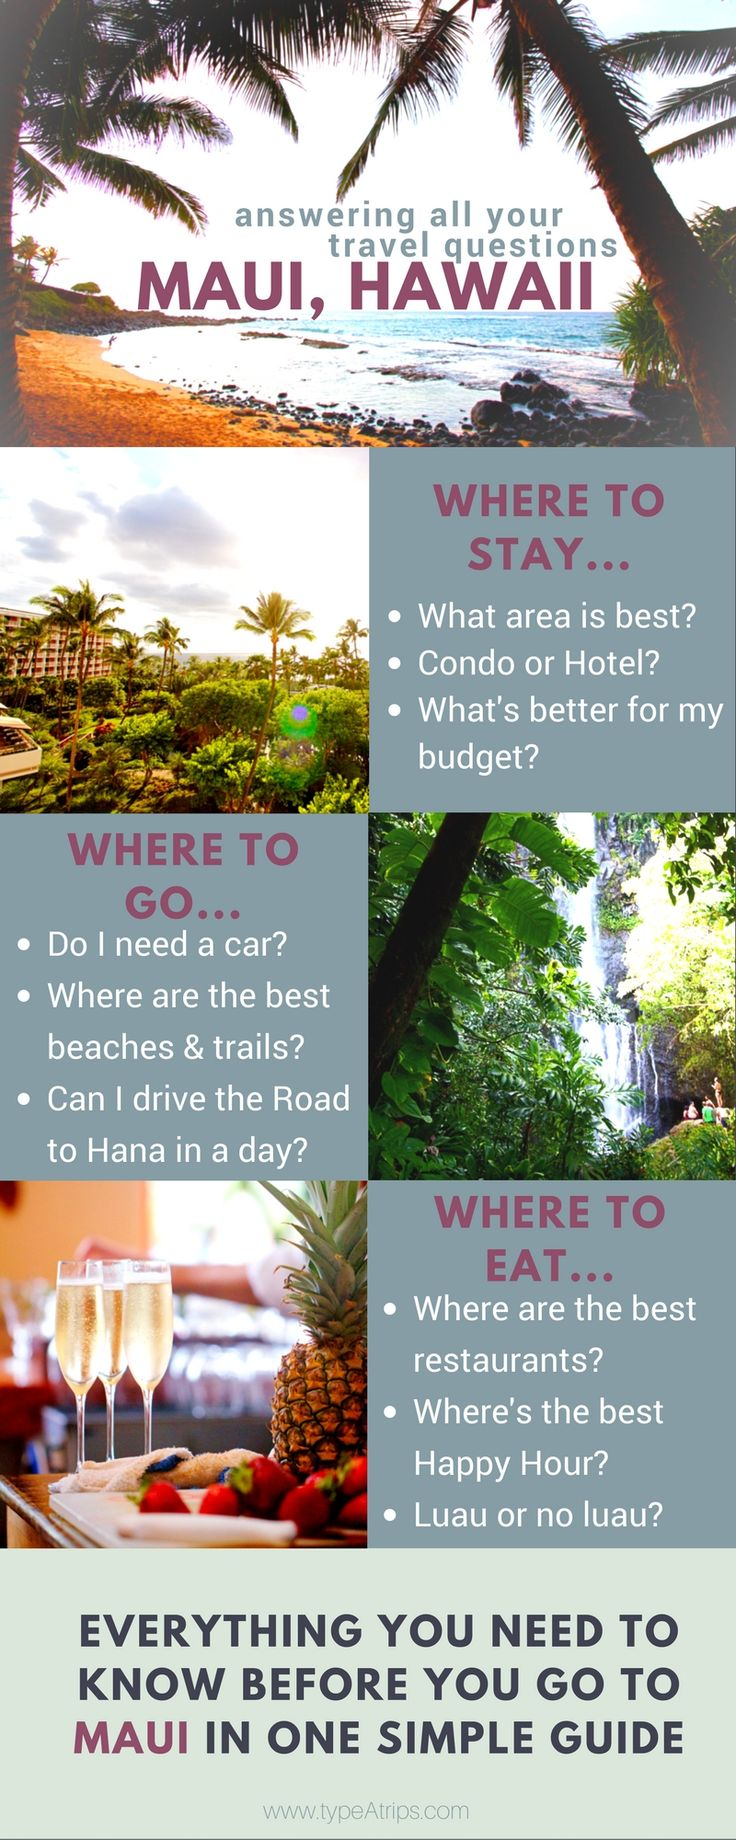 Maui, Hawaii - All You Need to Know Before You Go | It's hard planning a trip to a place you've never been and I had so many questions when I was planning my first trip - what part of the island should I stay at? Should I spend time in different areas or just one? Can I do the Road to Hana in a day? Should I stay in a condo or a hotel? Do I really need a rental car? So many questions! I'm going to answer all of these plus provide some fabulous suggestions of what to see, do and eat along the…